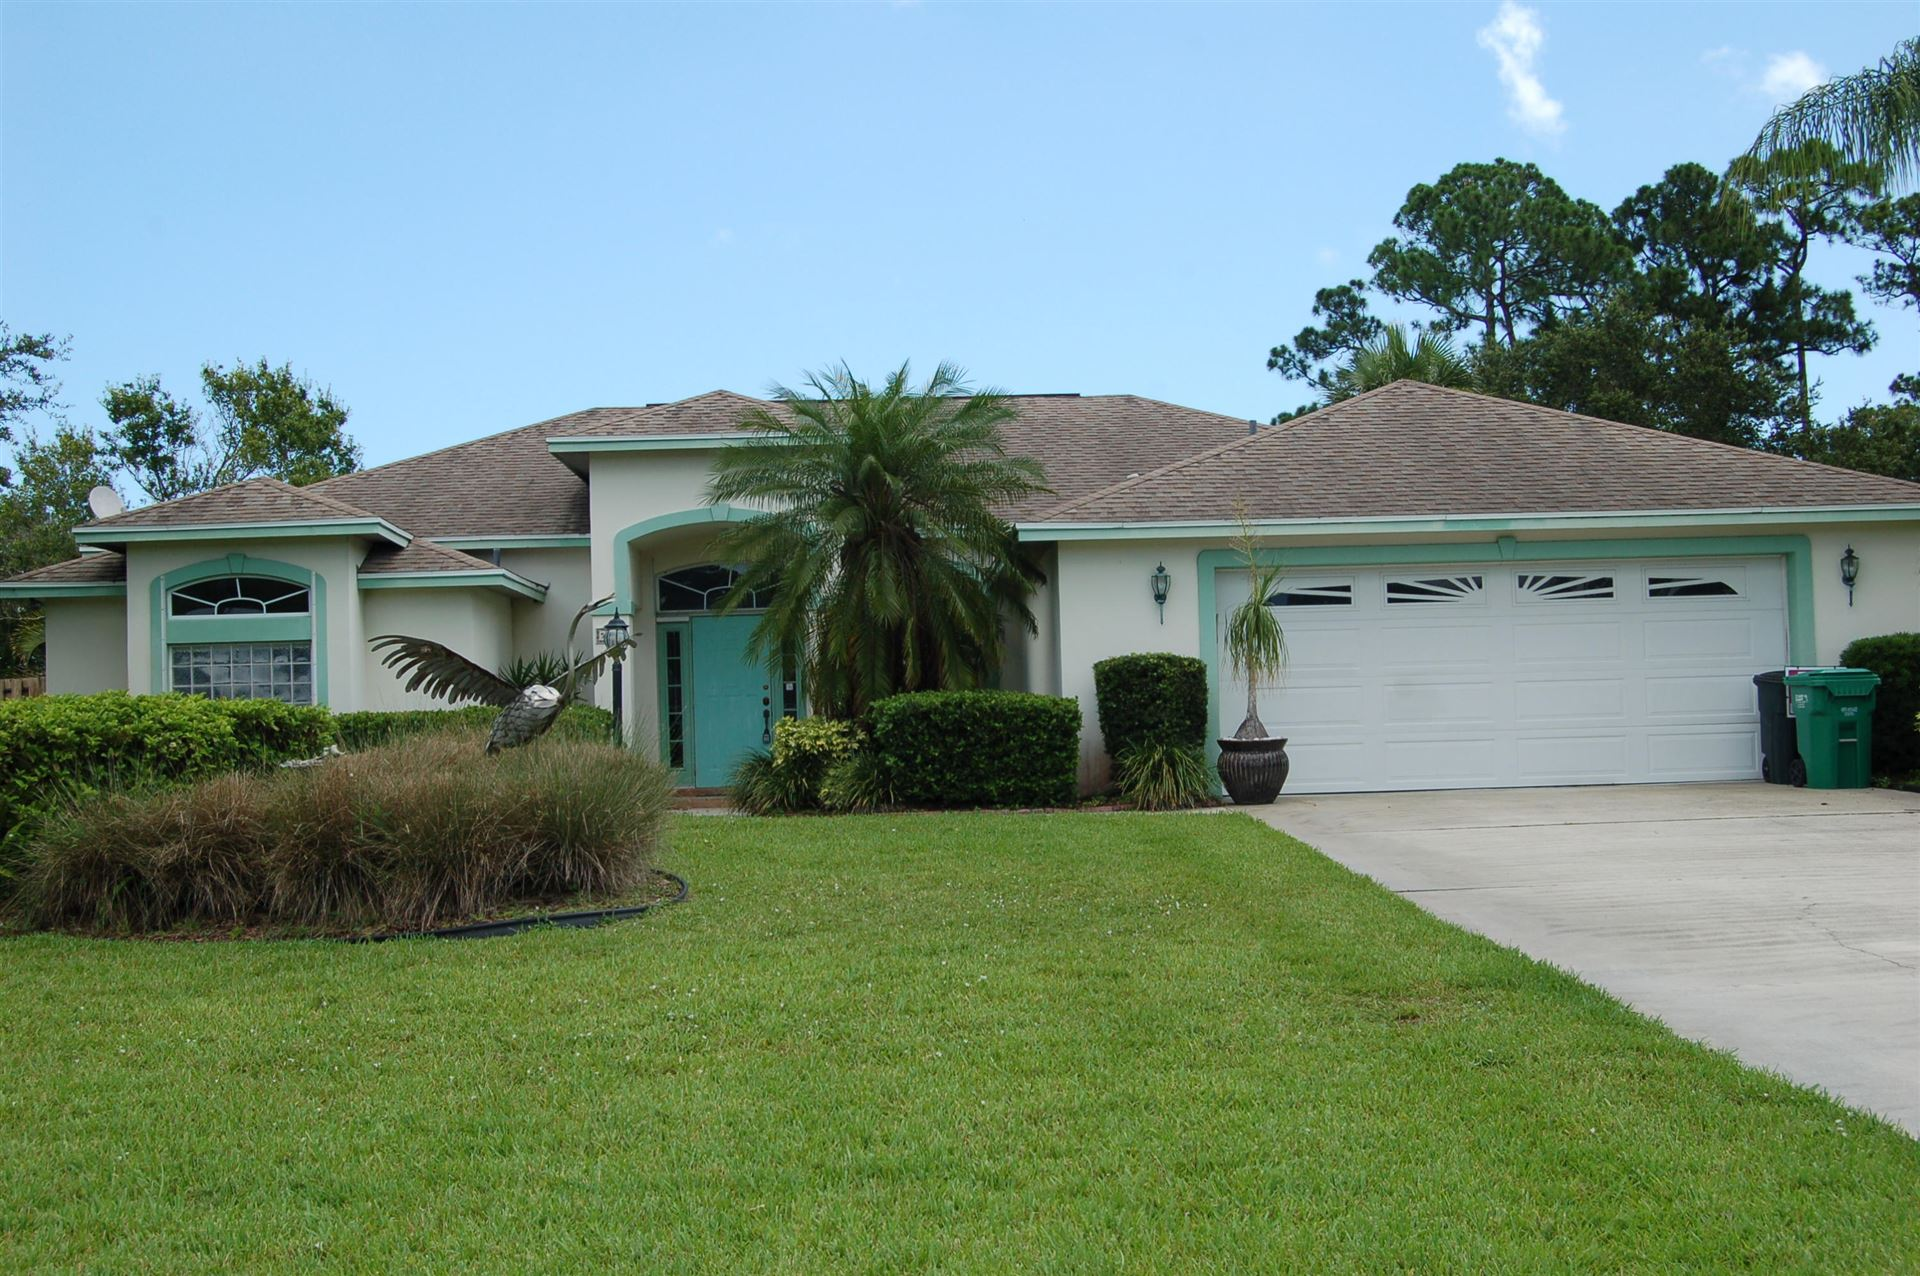 Photo of 5312 Stately Oaks Street, Fort Pierce, FL 34981 (MLS # RX-10631967)